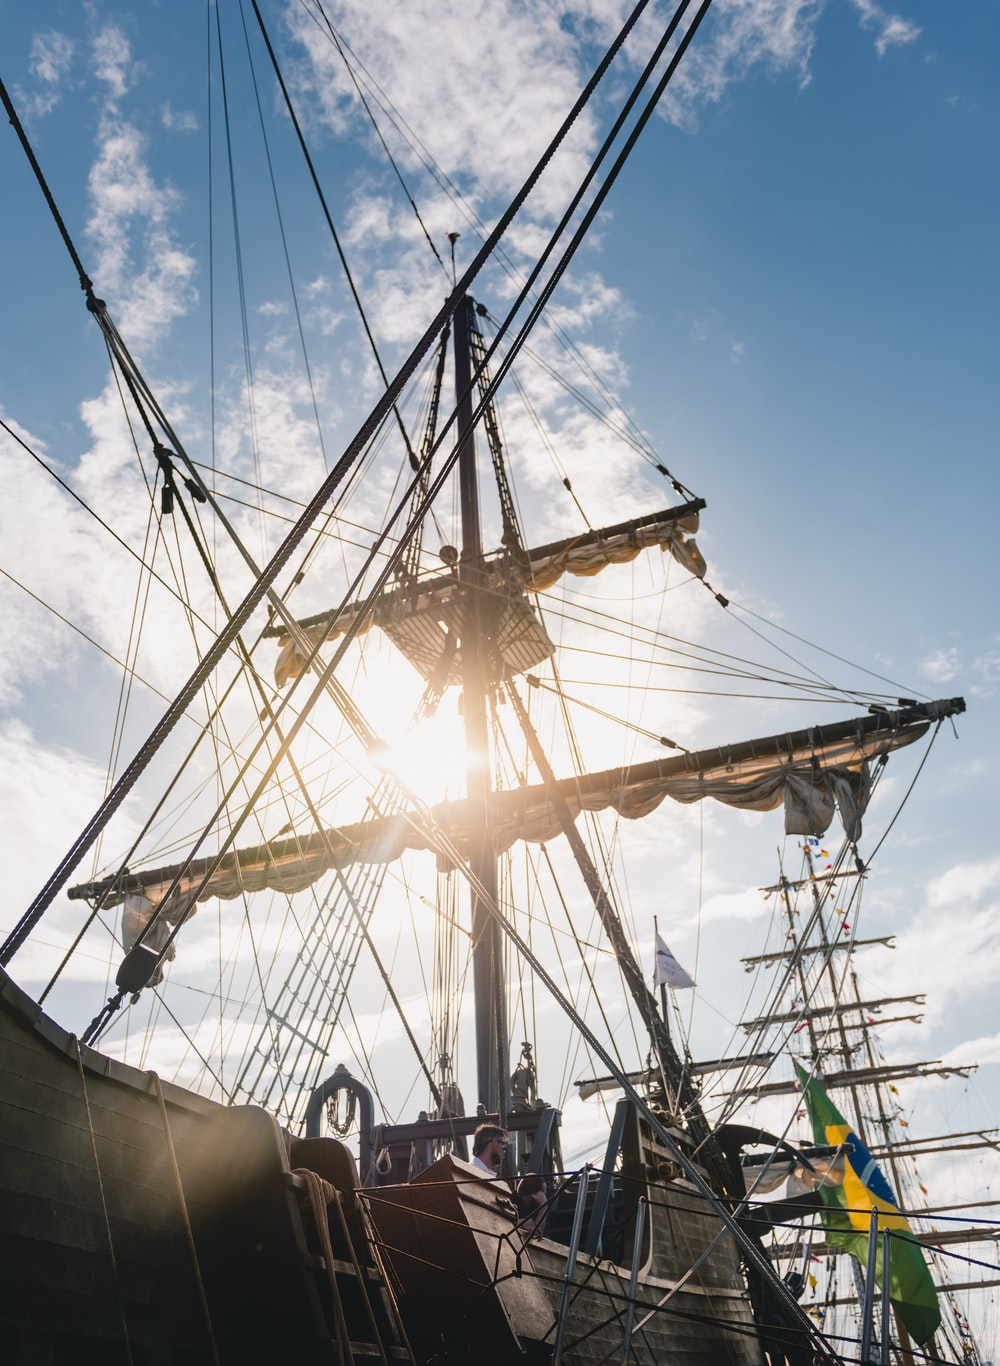 brown wooden galleon ship with Brazil flag